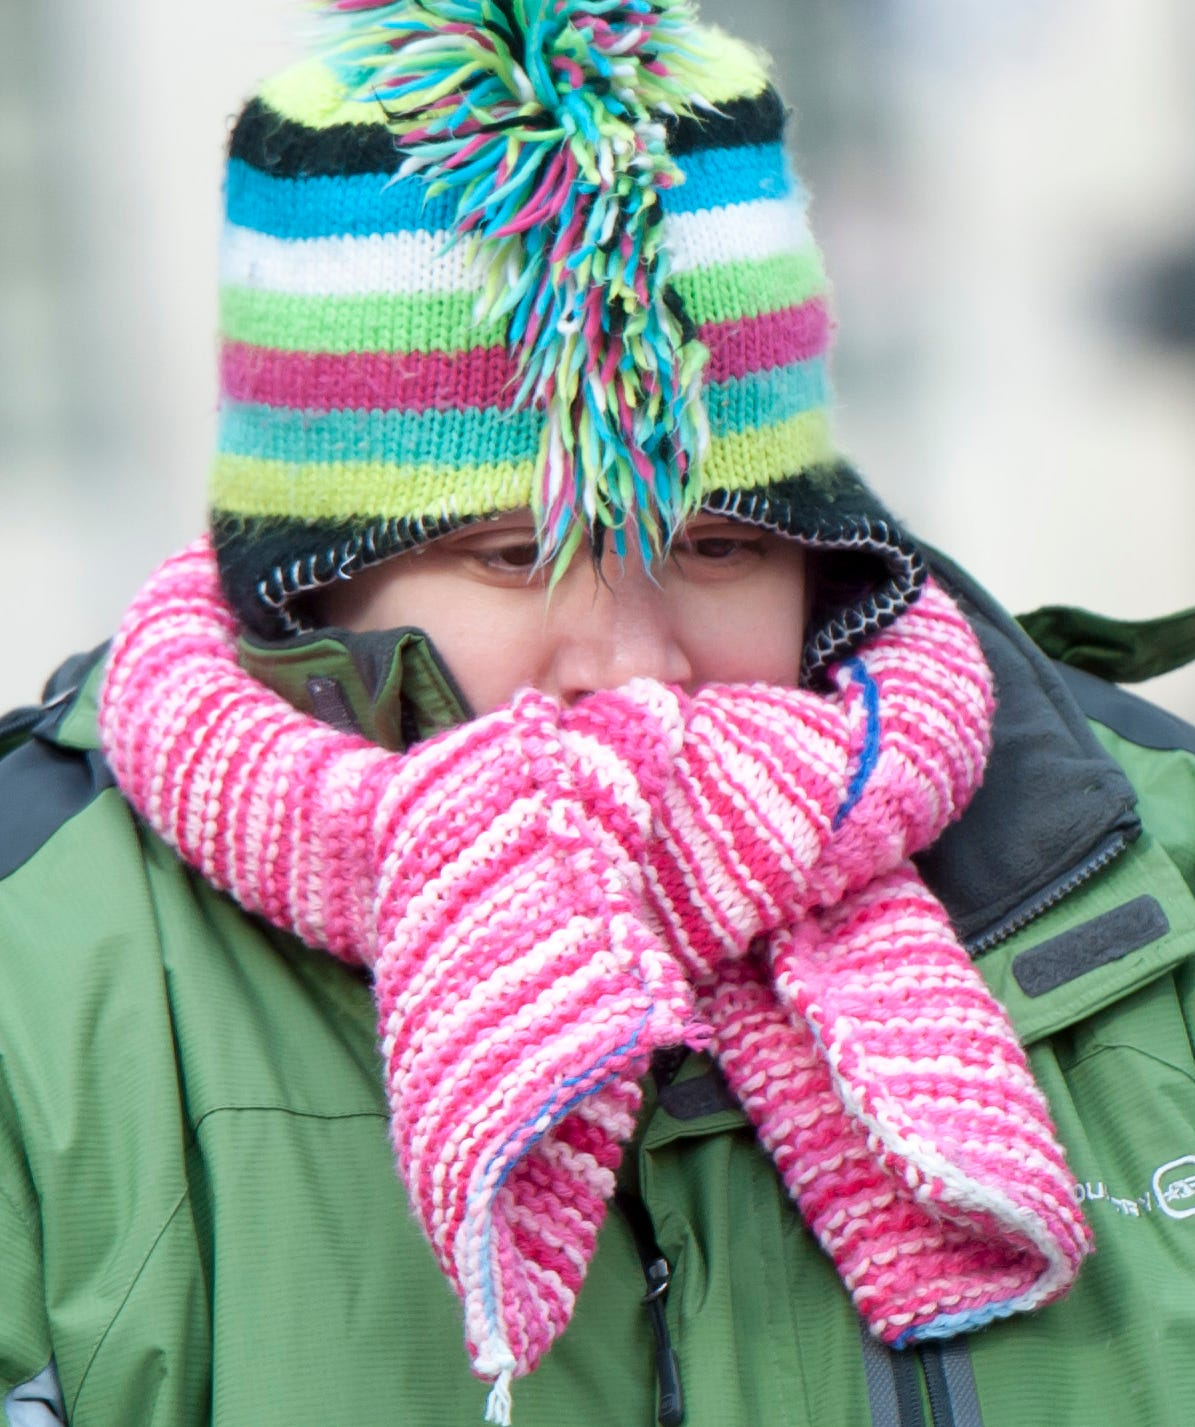 Prepare to bundle up for the cold weather.